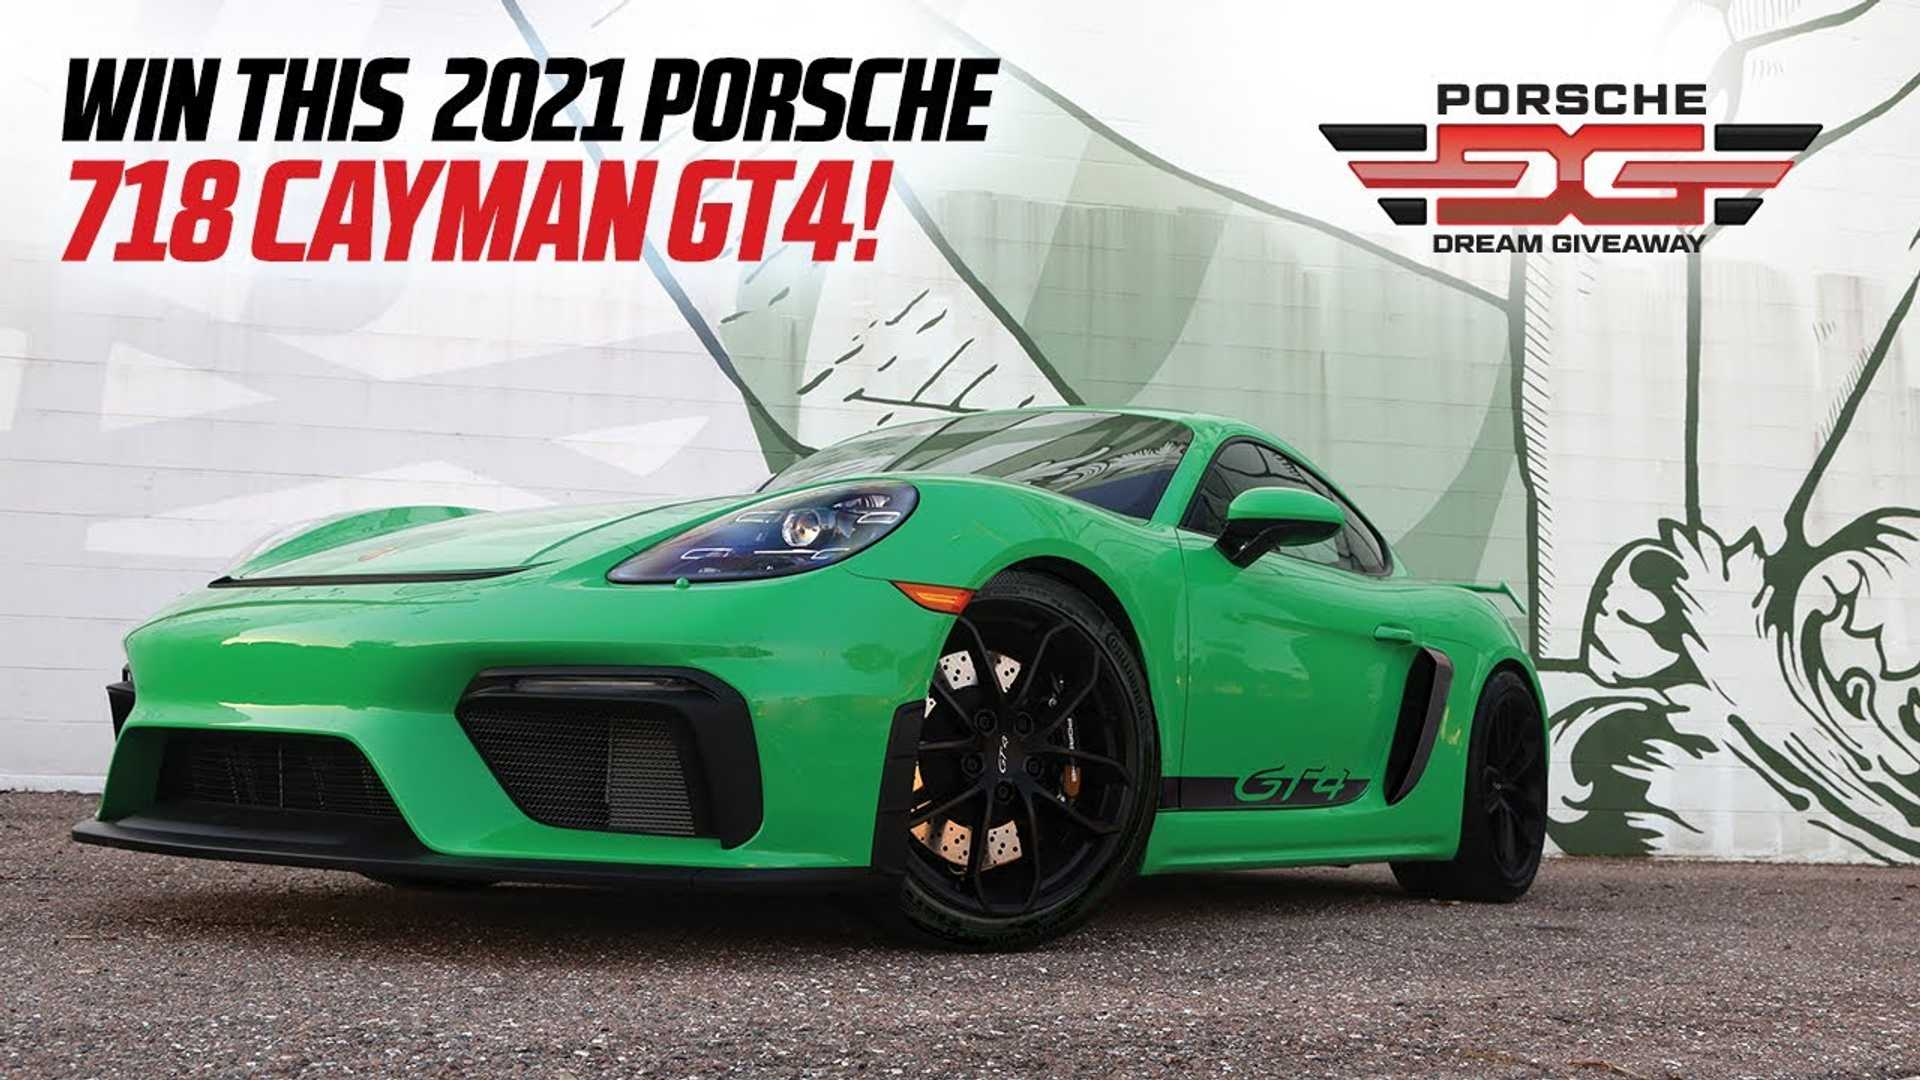 Get Lucky Winning This 2021 Porsche 718 Cayman GT4 Plus $33,000 Cash